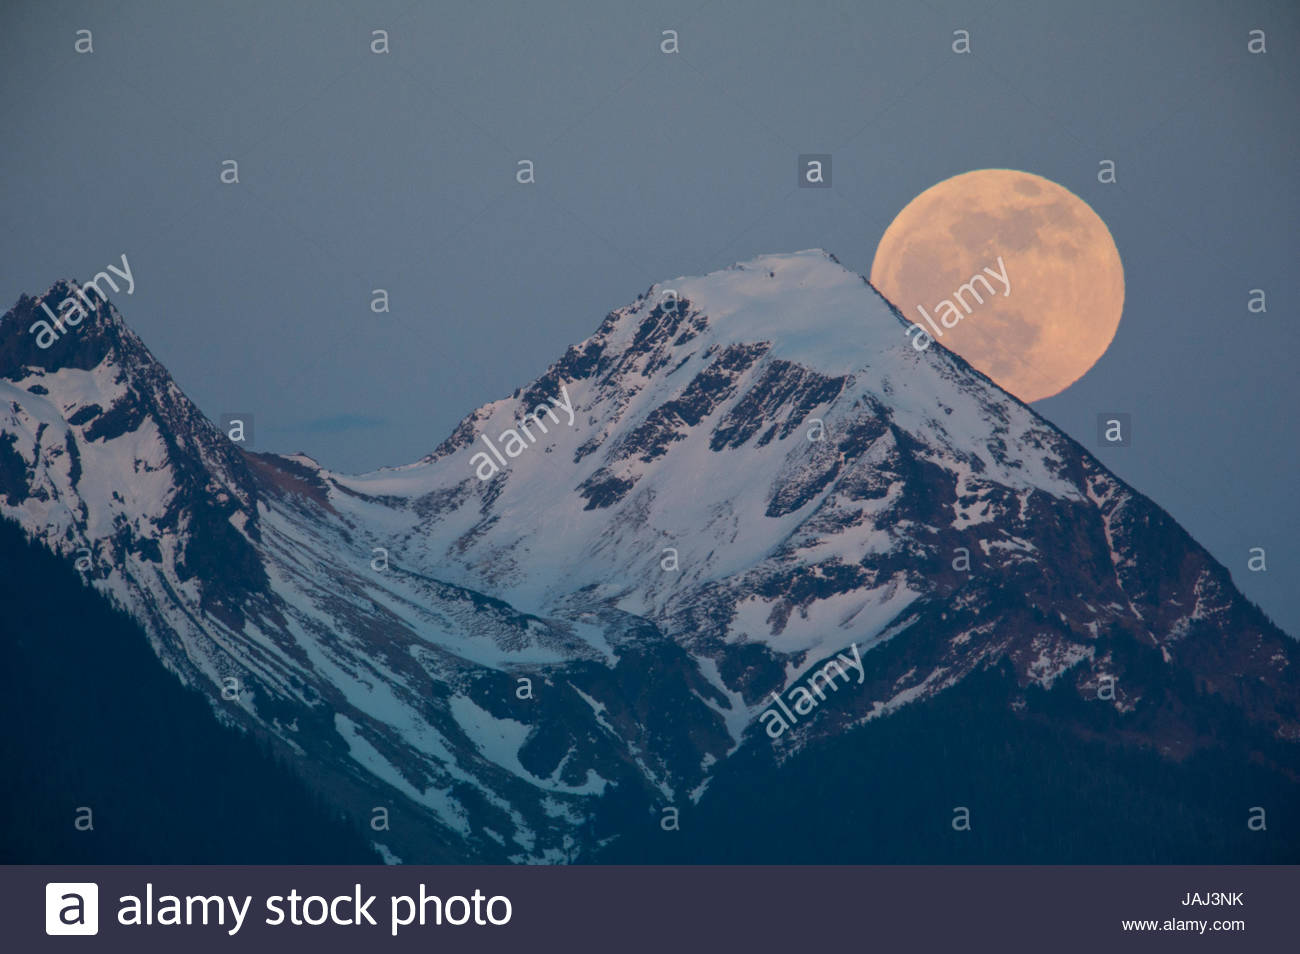 A full moon above the Chugach Mountains. - Stock Image